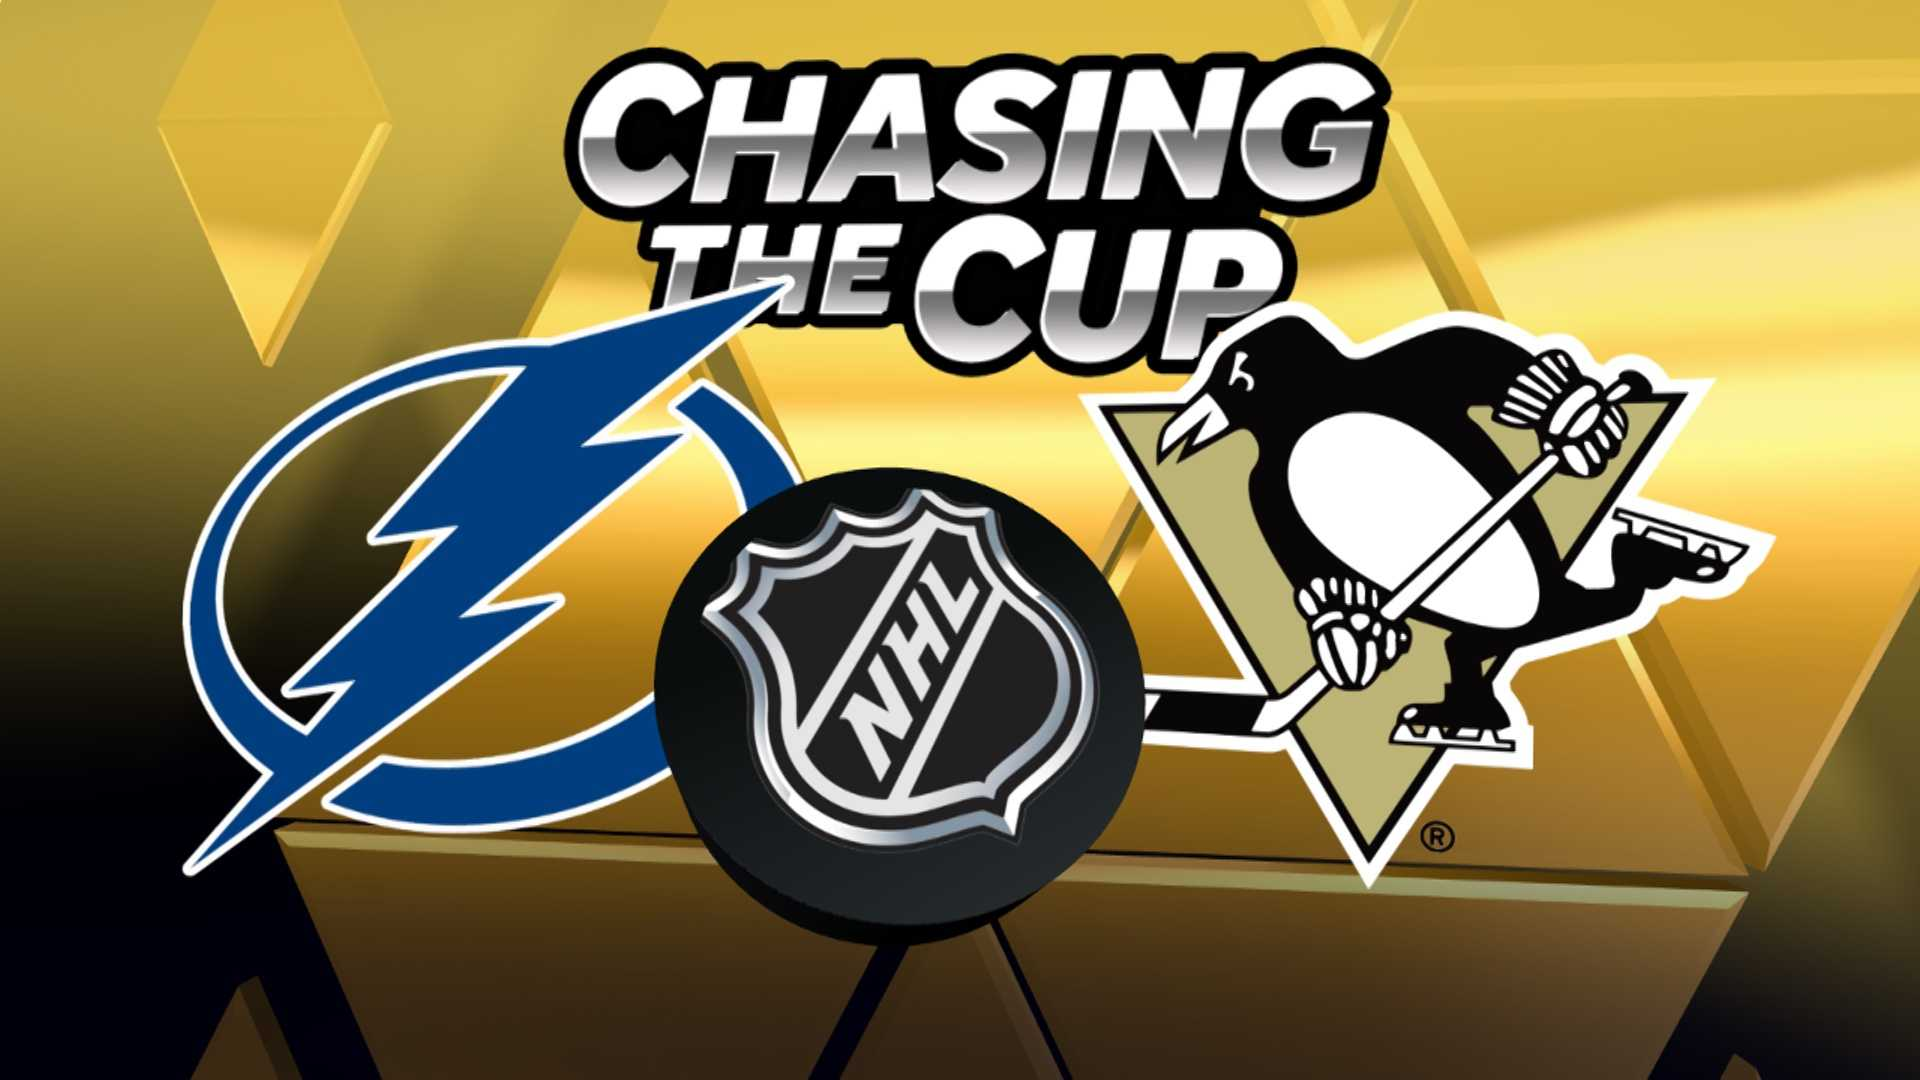 Penguins, Lightning, Chasing the Cup